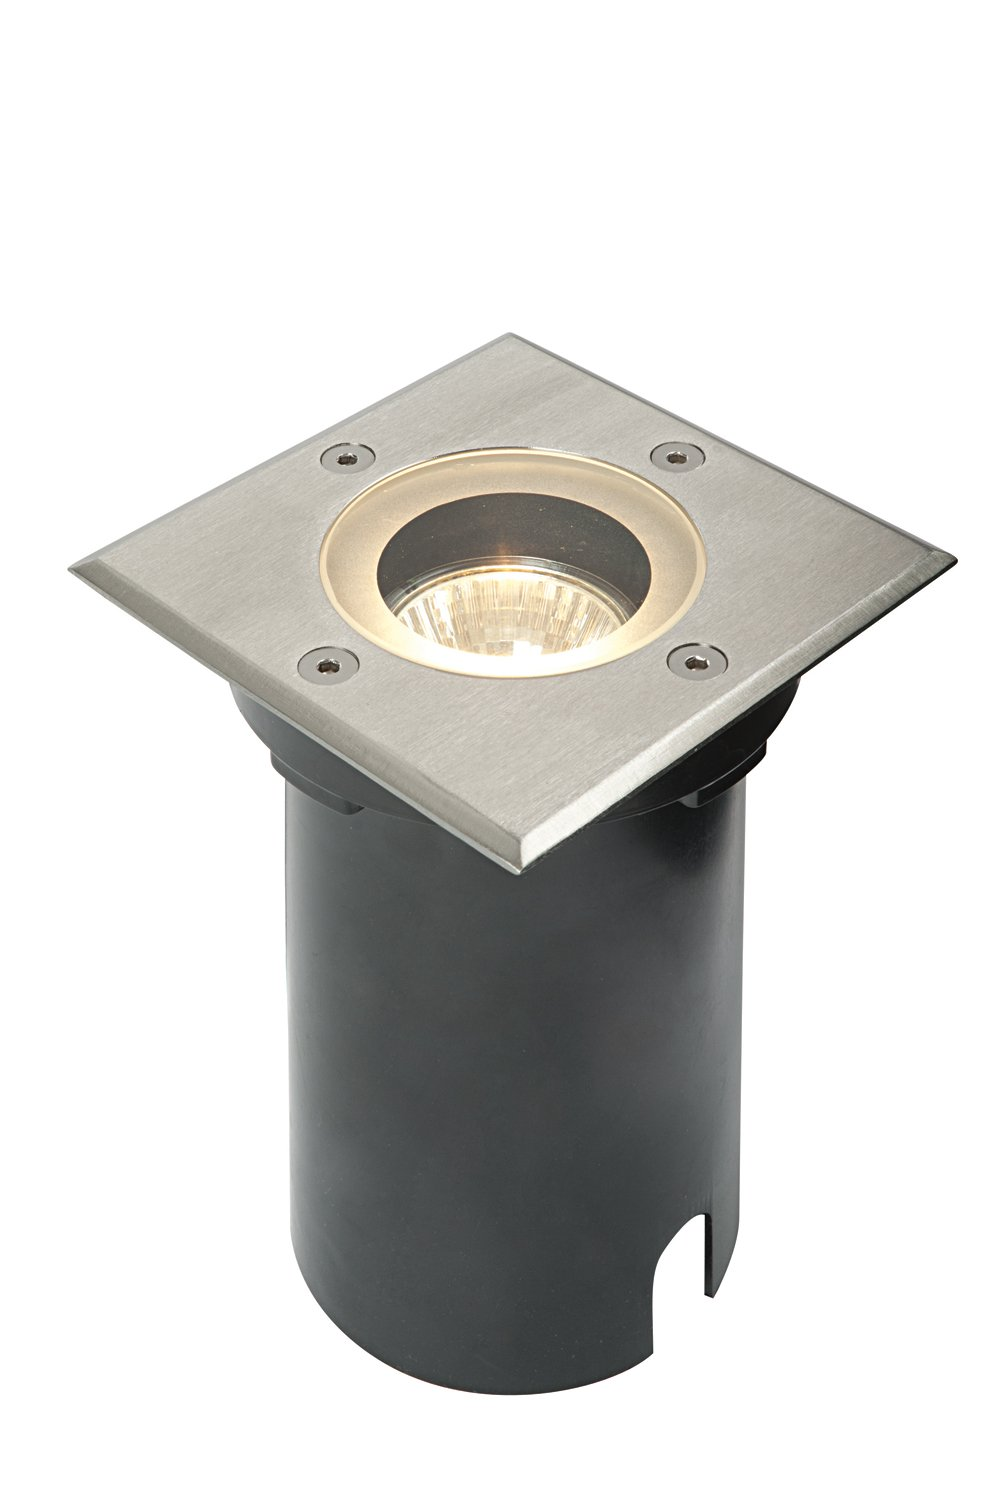 50W Round Polished Stainless Steel Outdoor Garden Pathway IP65 Recessed LED Compatible GU10 Walkover Floor Ground Uplighter Betta Lighting